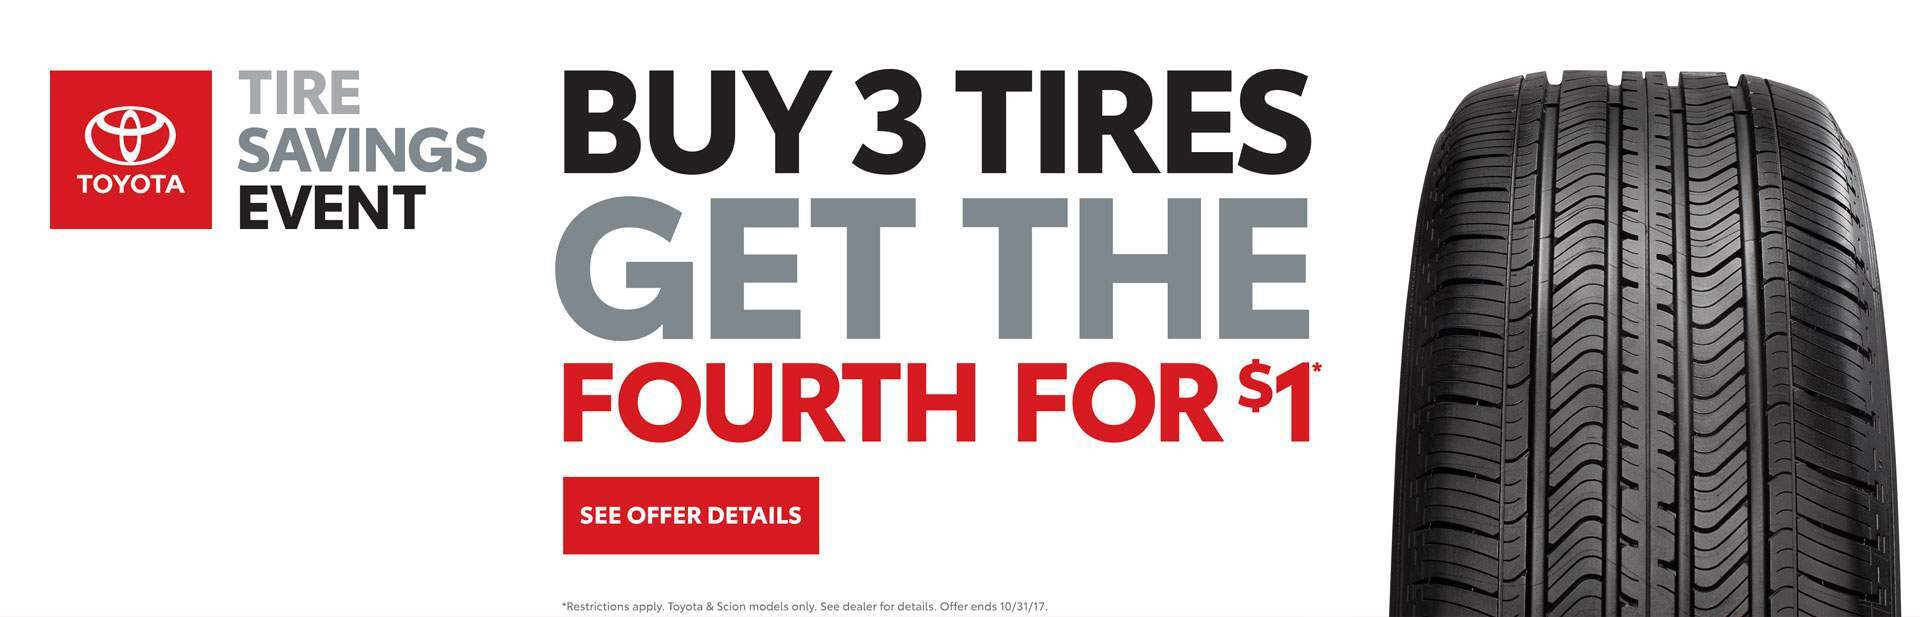 Buy 3 Tires and get the 4th for $1 at Allan Nott Toyota!